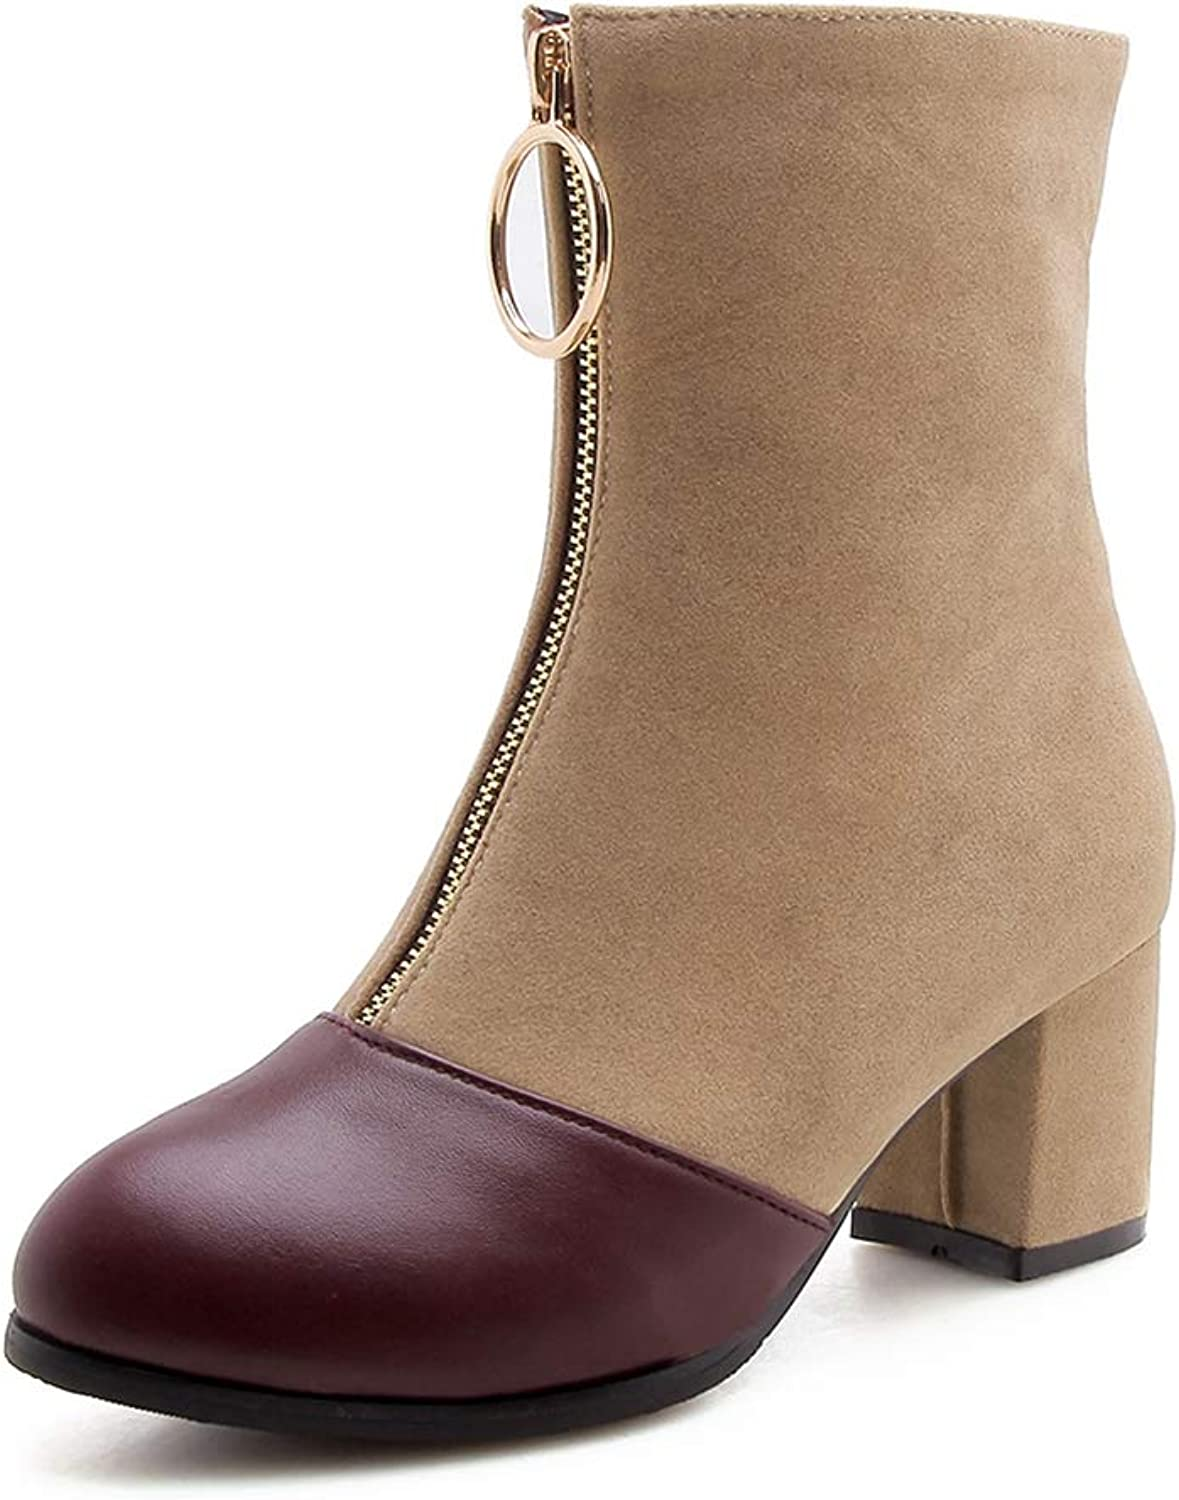 T-JULY Women's New Square Heel Mid Calf Boots Plus Size Zip Up Winter Boots Girls Ladies shoes